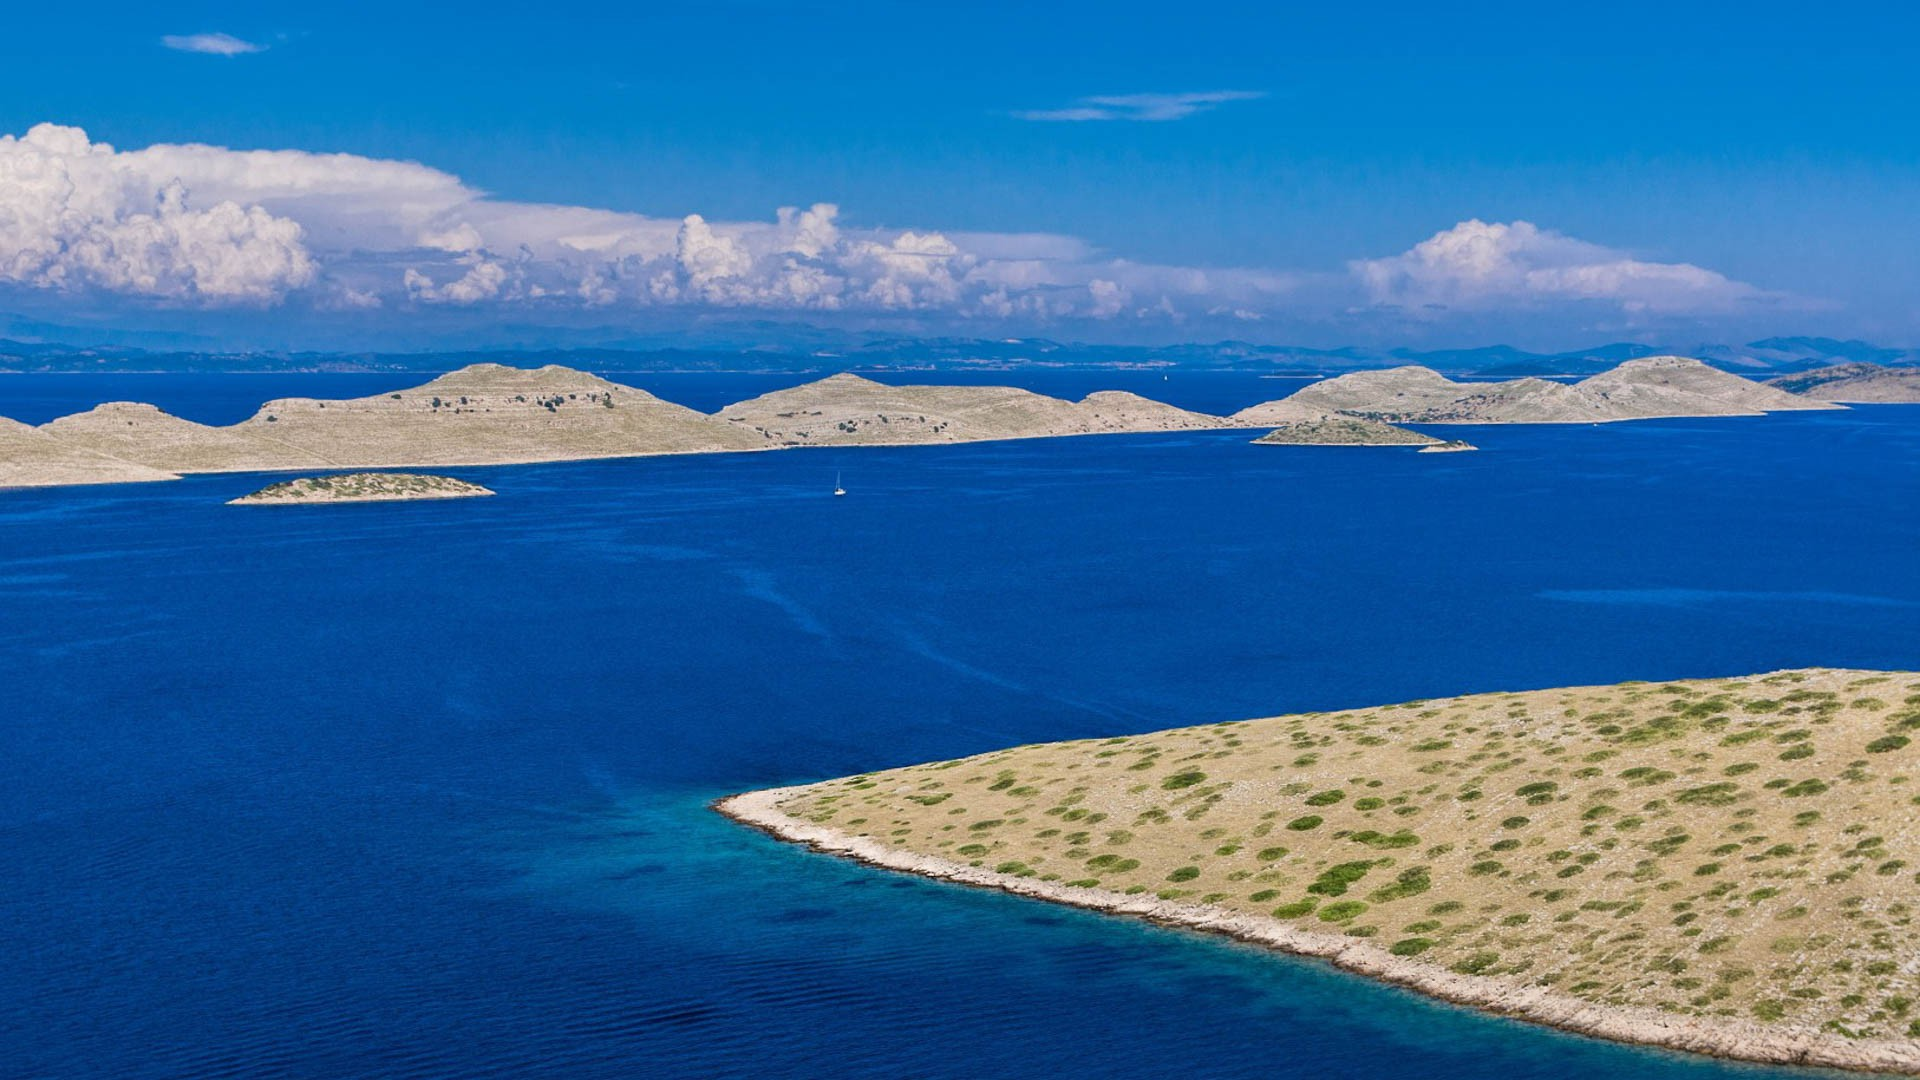 Kornati - Adriatic Sea | Croatia Cruise Croatia Cruise